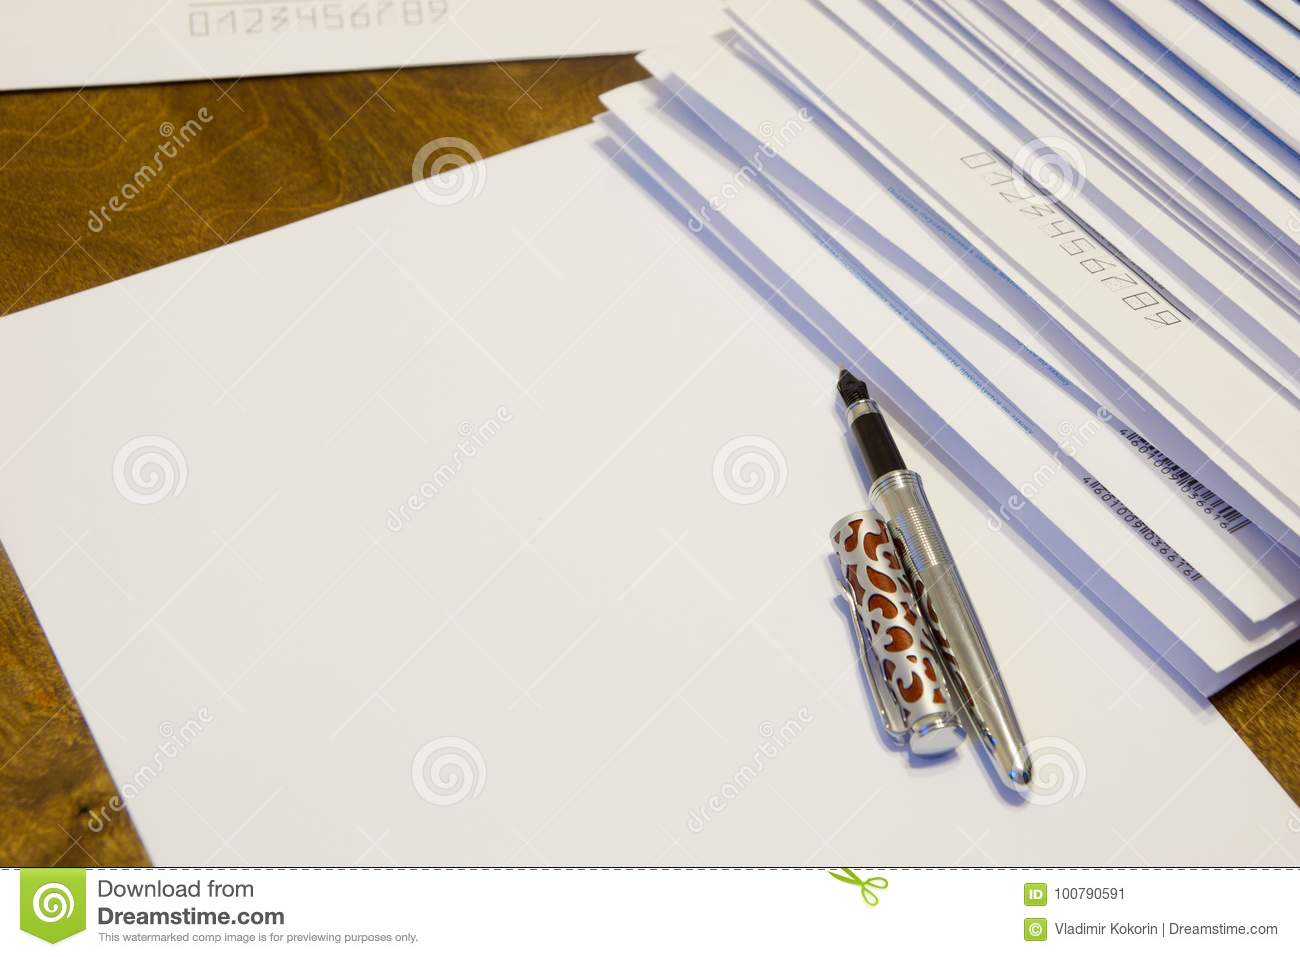 To write a letter on paper. A stack of letters in paper envelopes.